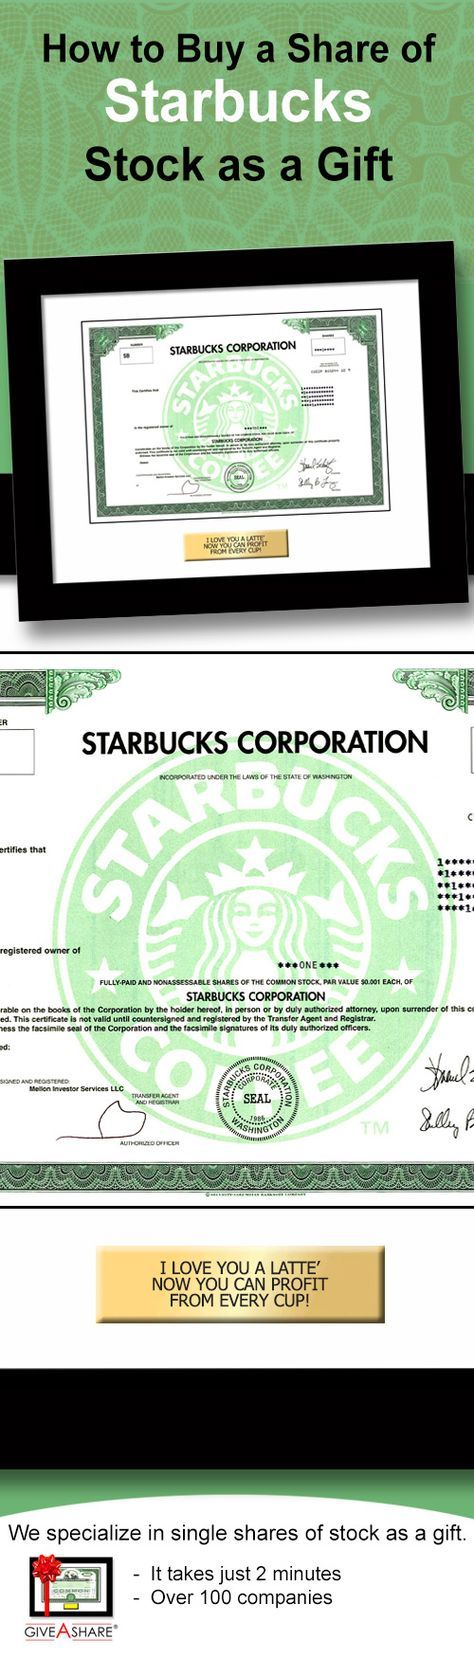 Learn how to buy a share of Starbucks stock. Great gift idea - May your cup always be full and your portfolio strong!